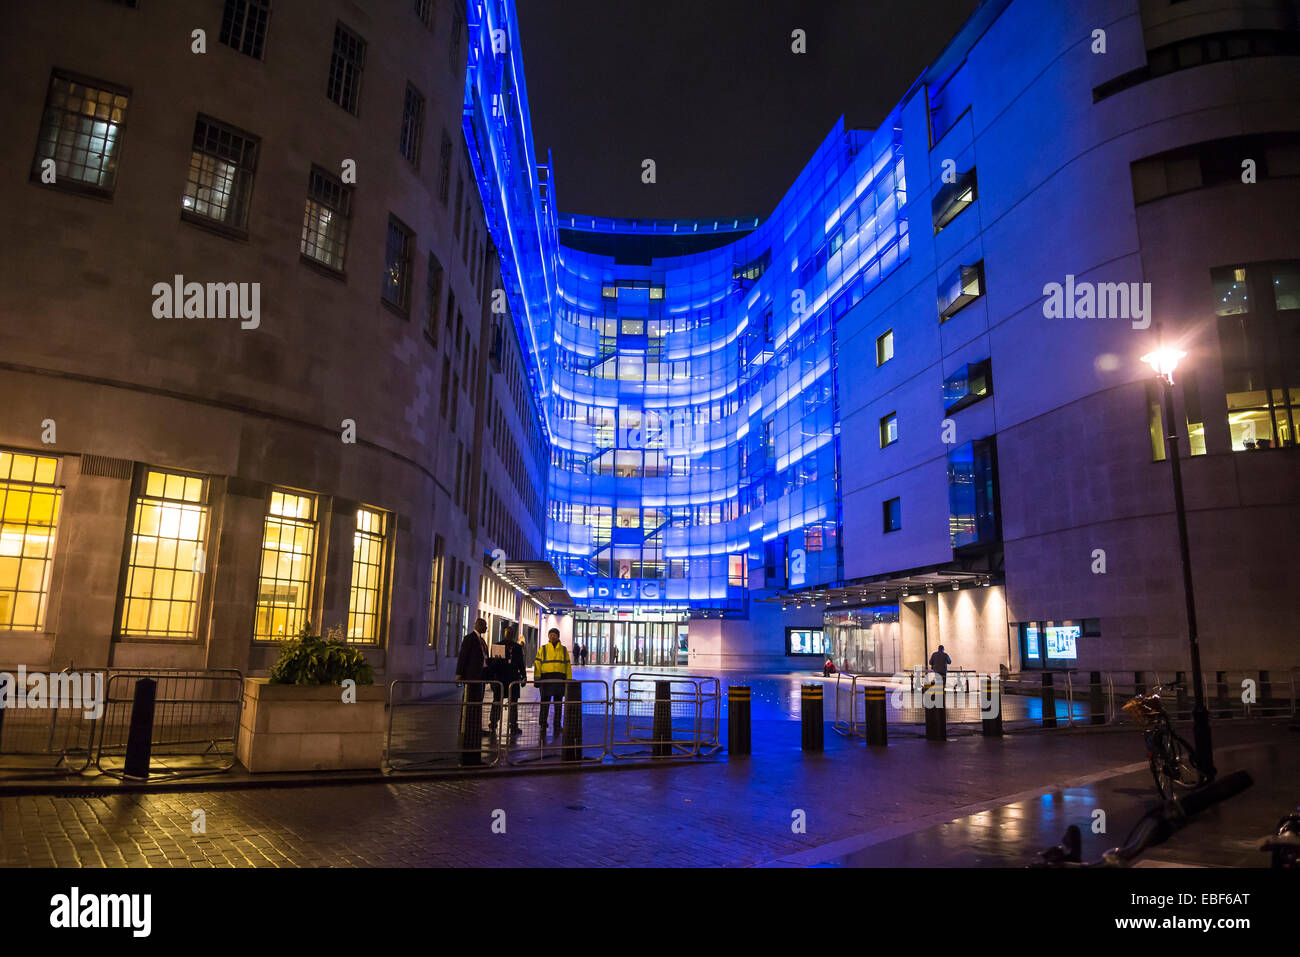 BBC Broadcasting House and new eastern extension, Portland Place, London, England, UK Stock Photo